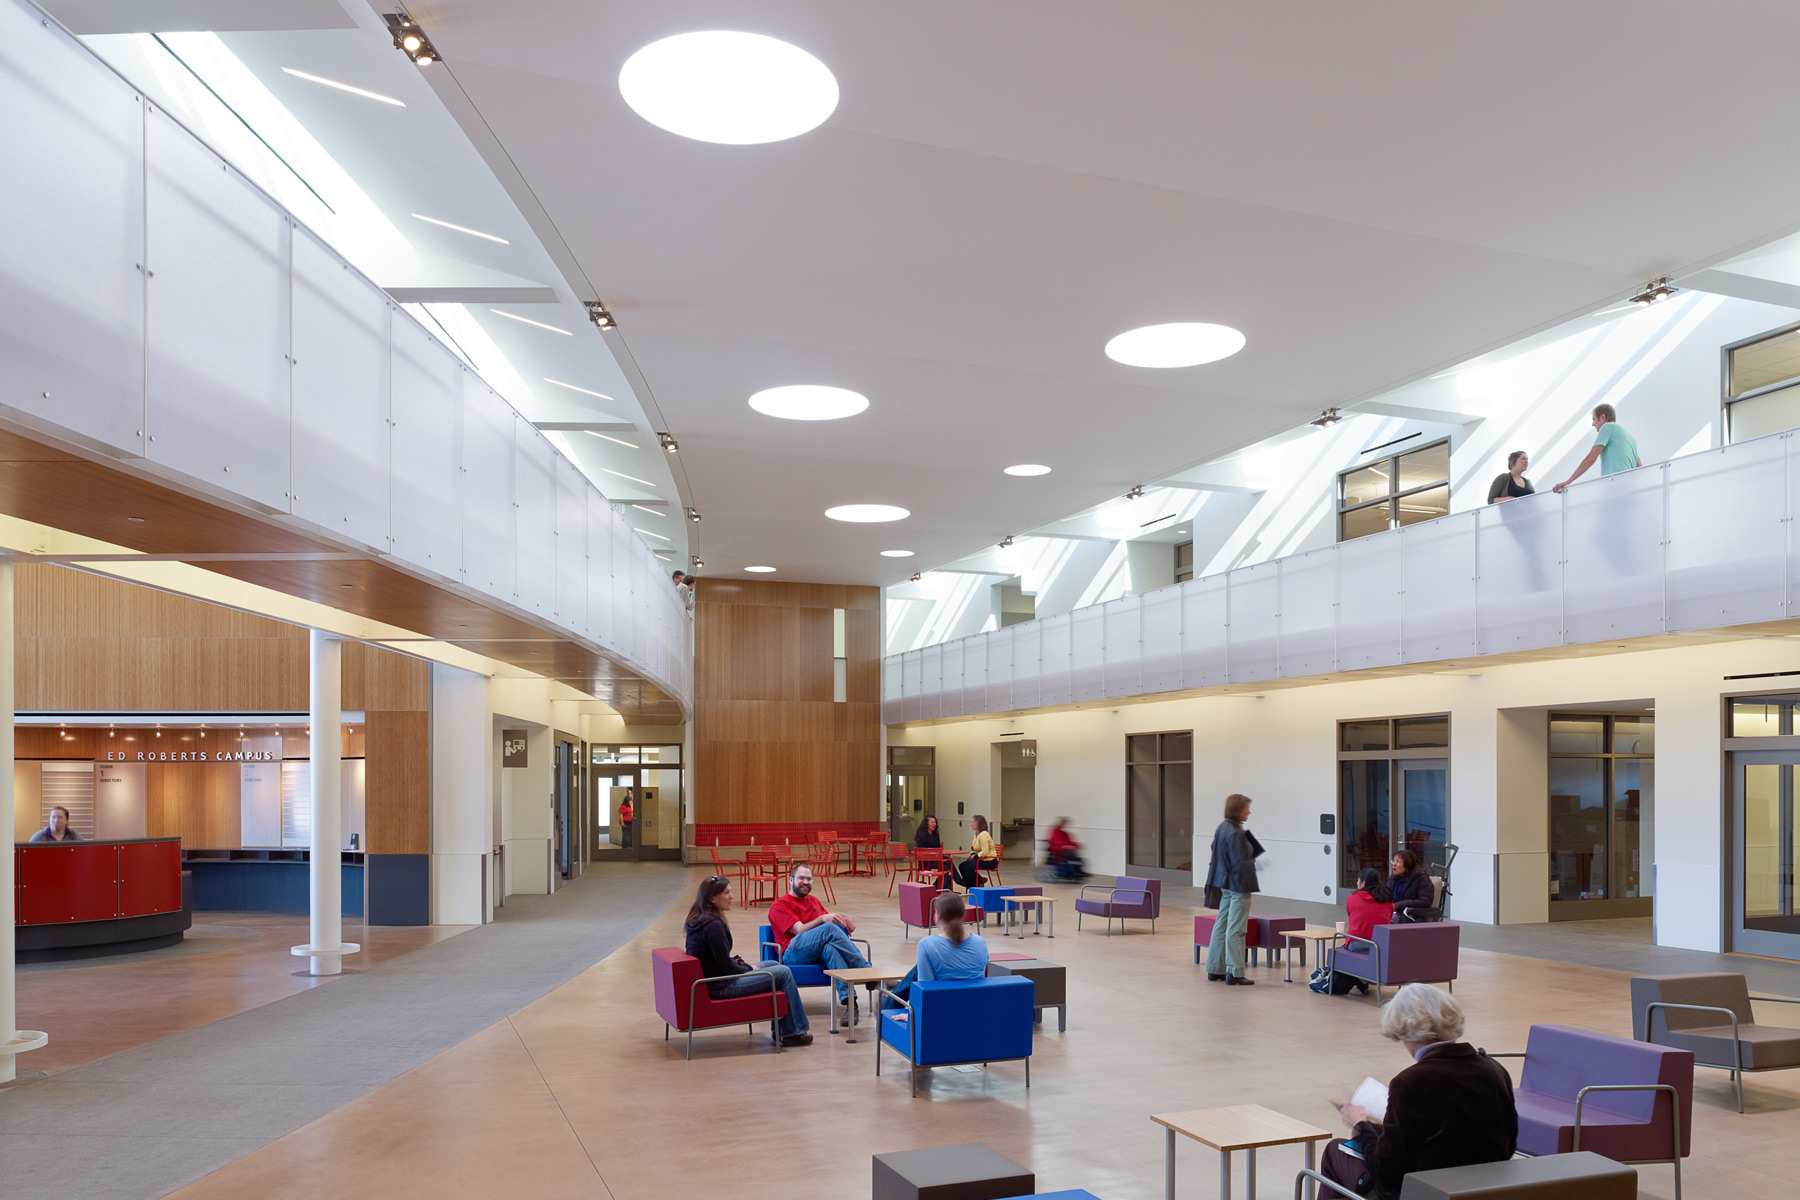 The Ed Roberts Campus is a nationally-recognized model of universal design in the San Francisco Bay Area, exemplifying design addressing a social justice issue.